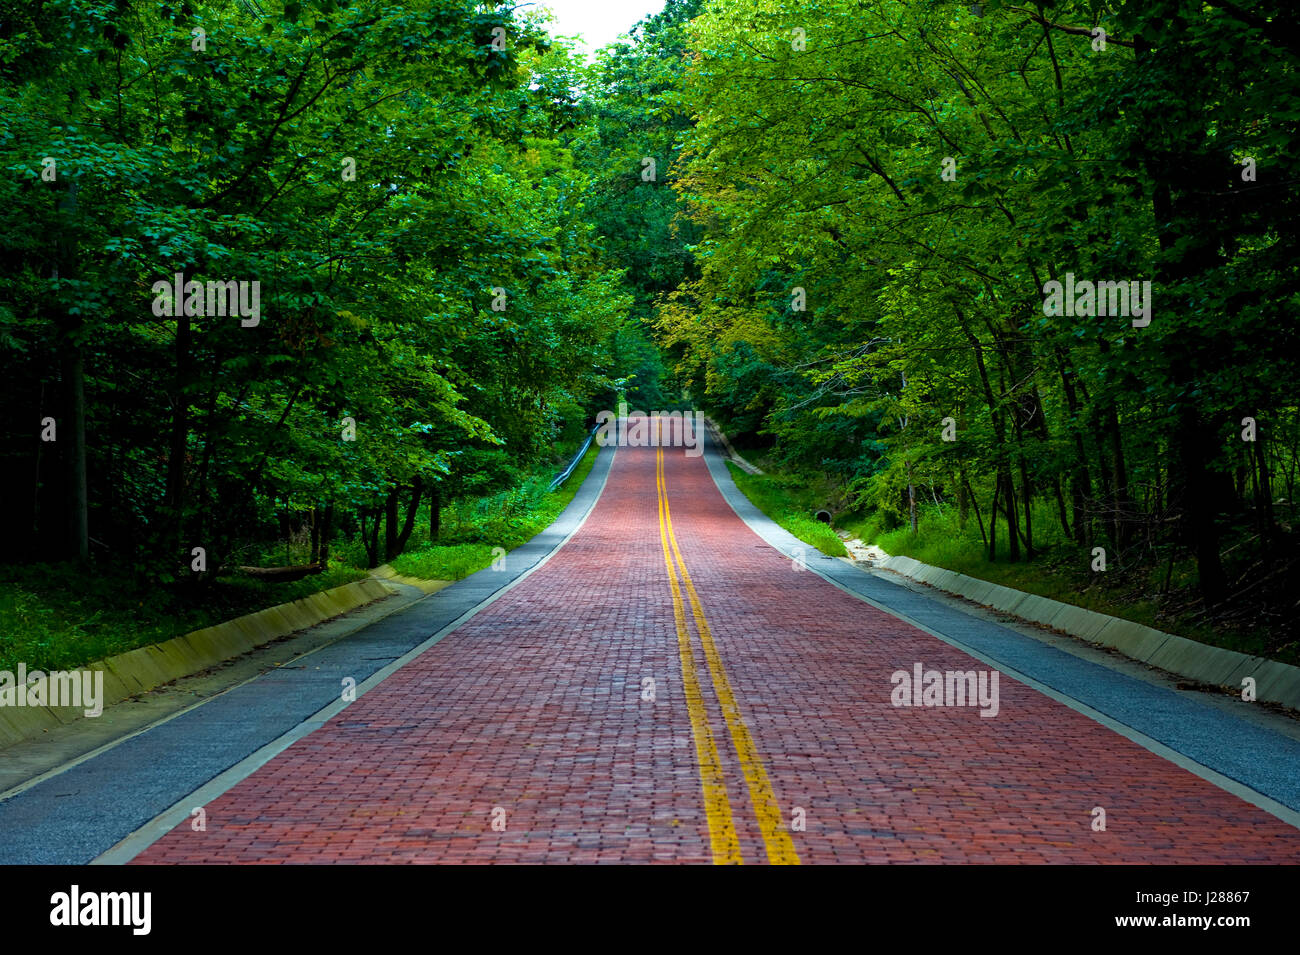 Image of a red brick road leading off into the distance thru a wooded area Stock Photo